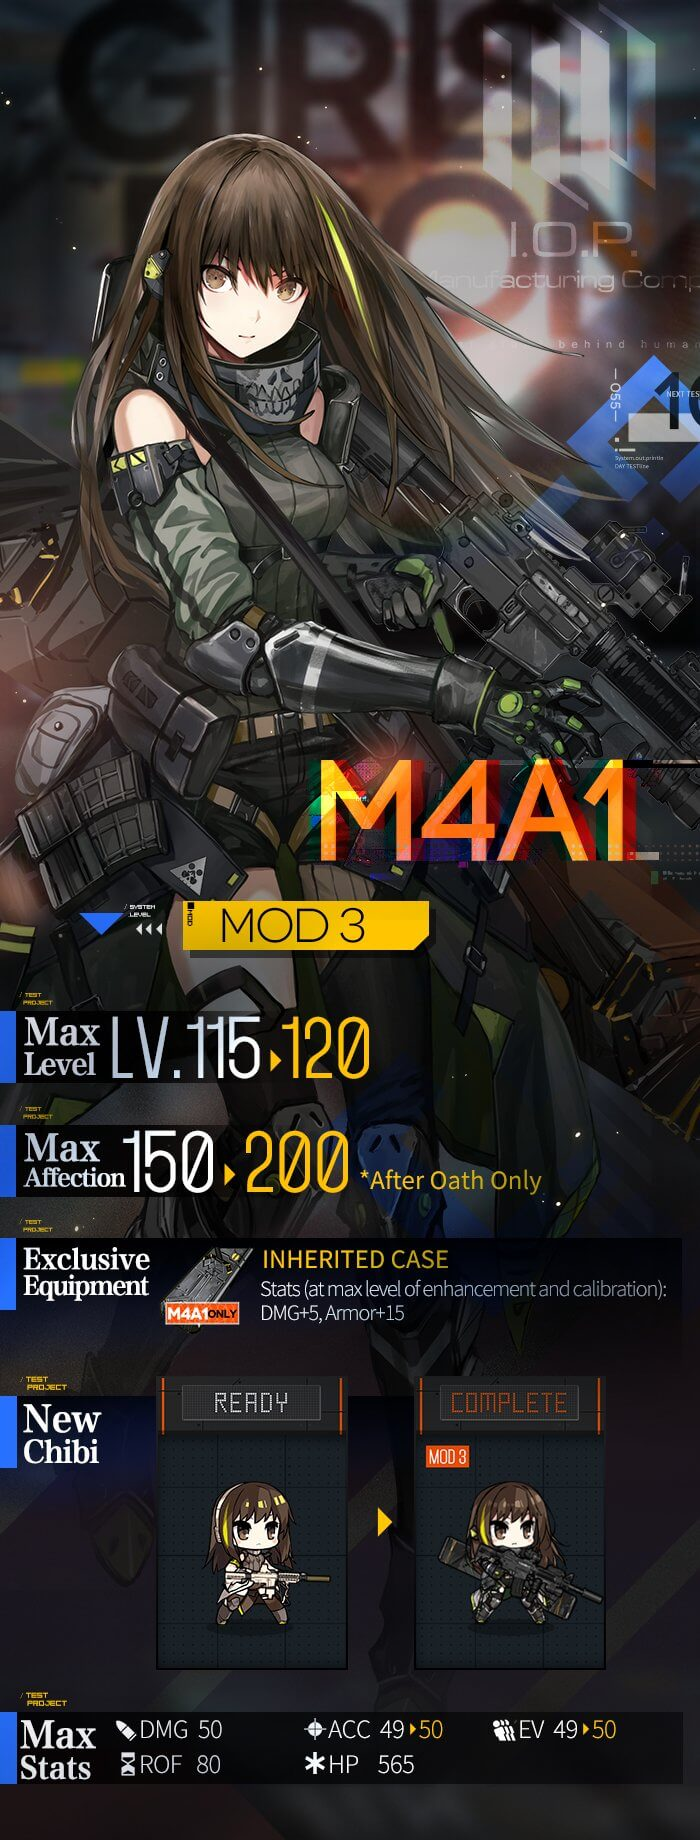 Official Infographic for M4A1's Neural Upgrade new art and special equipment